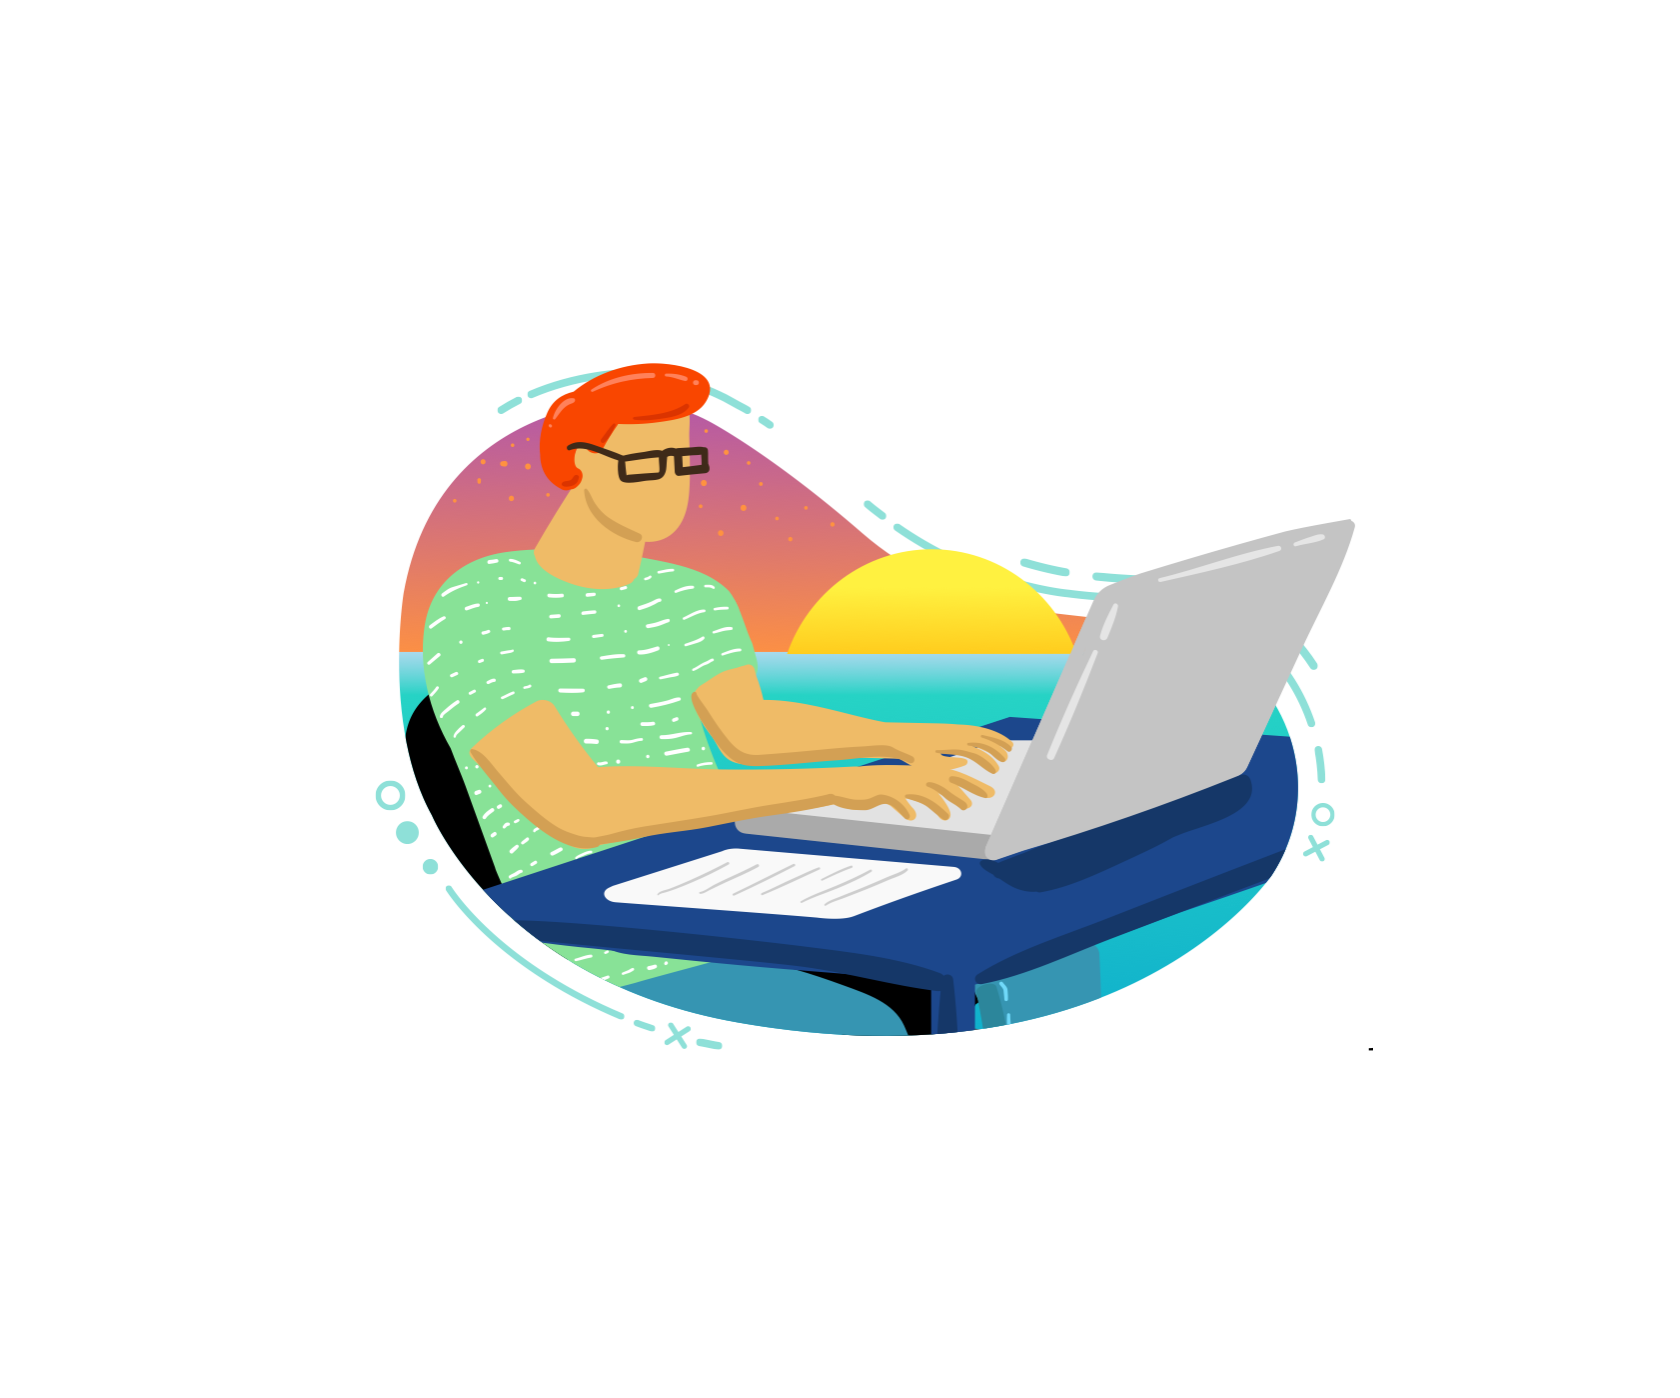 Illustration of IT working at the computer on his own island.